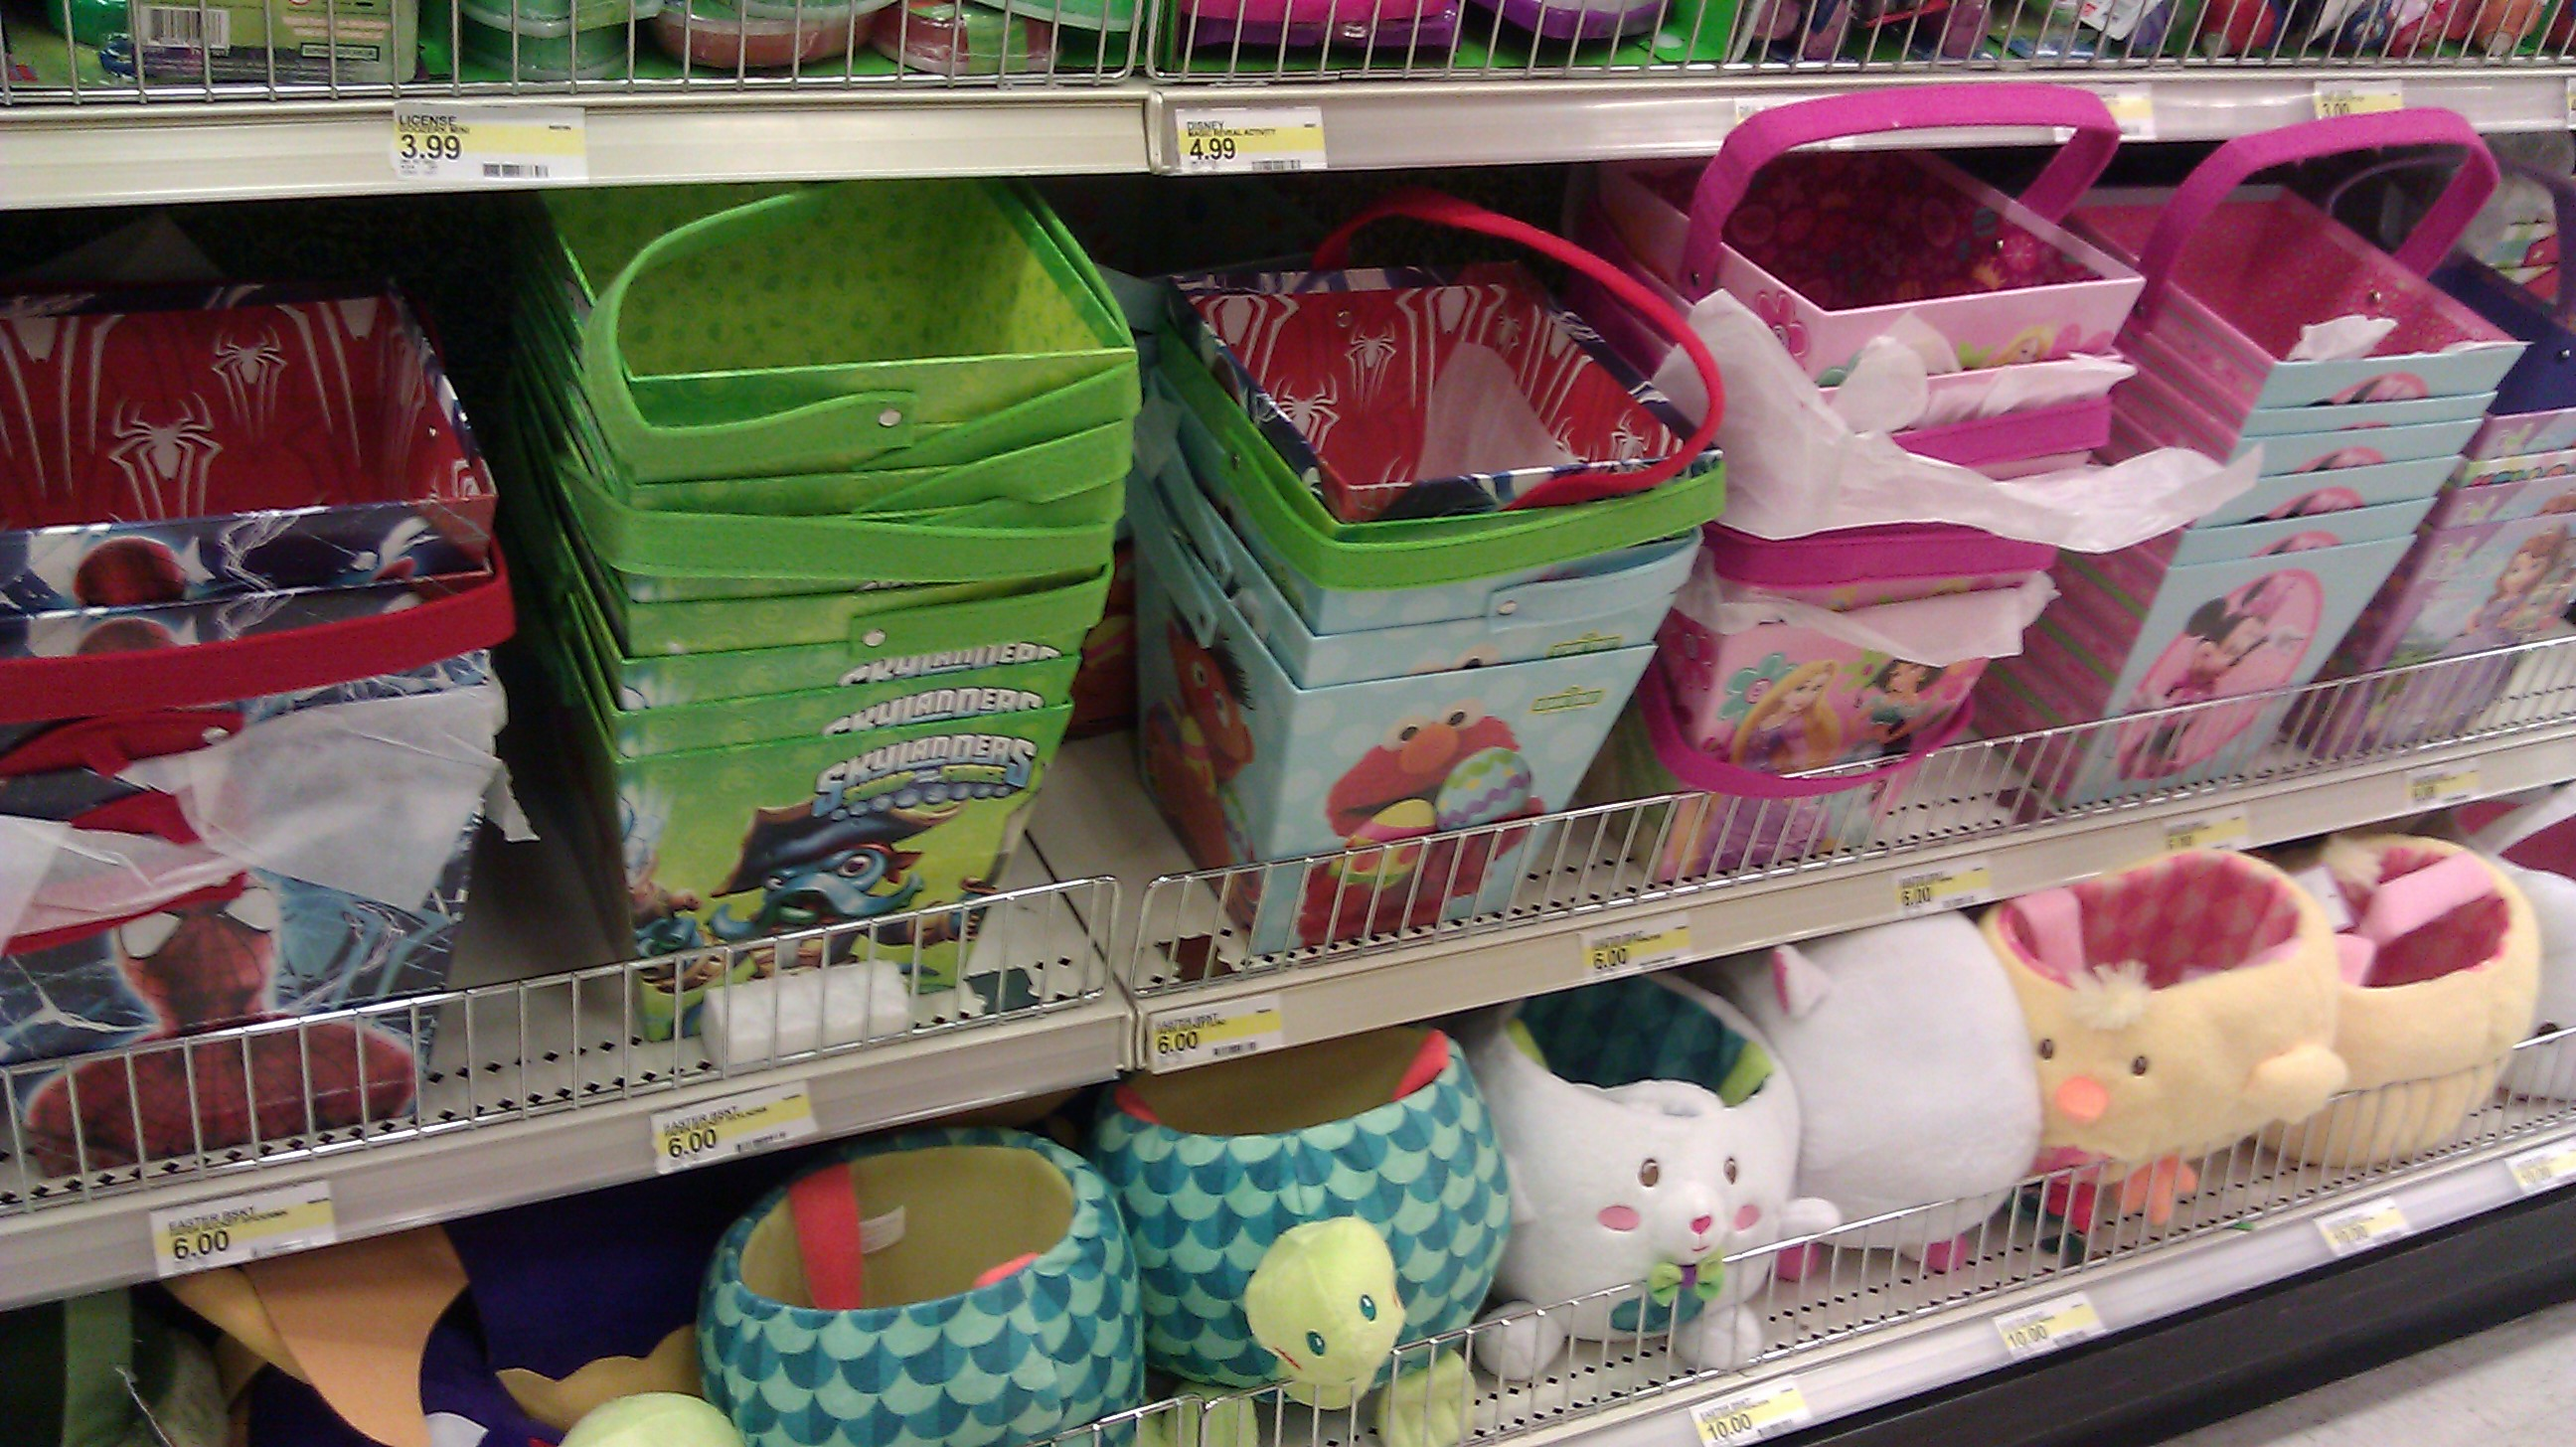 Target save on easter basket basics coupons are my currency easter baskets with target cartwheel wpid imag3863g wpid imag3868g negle Choice Image